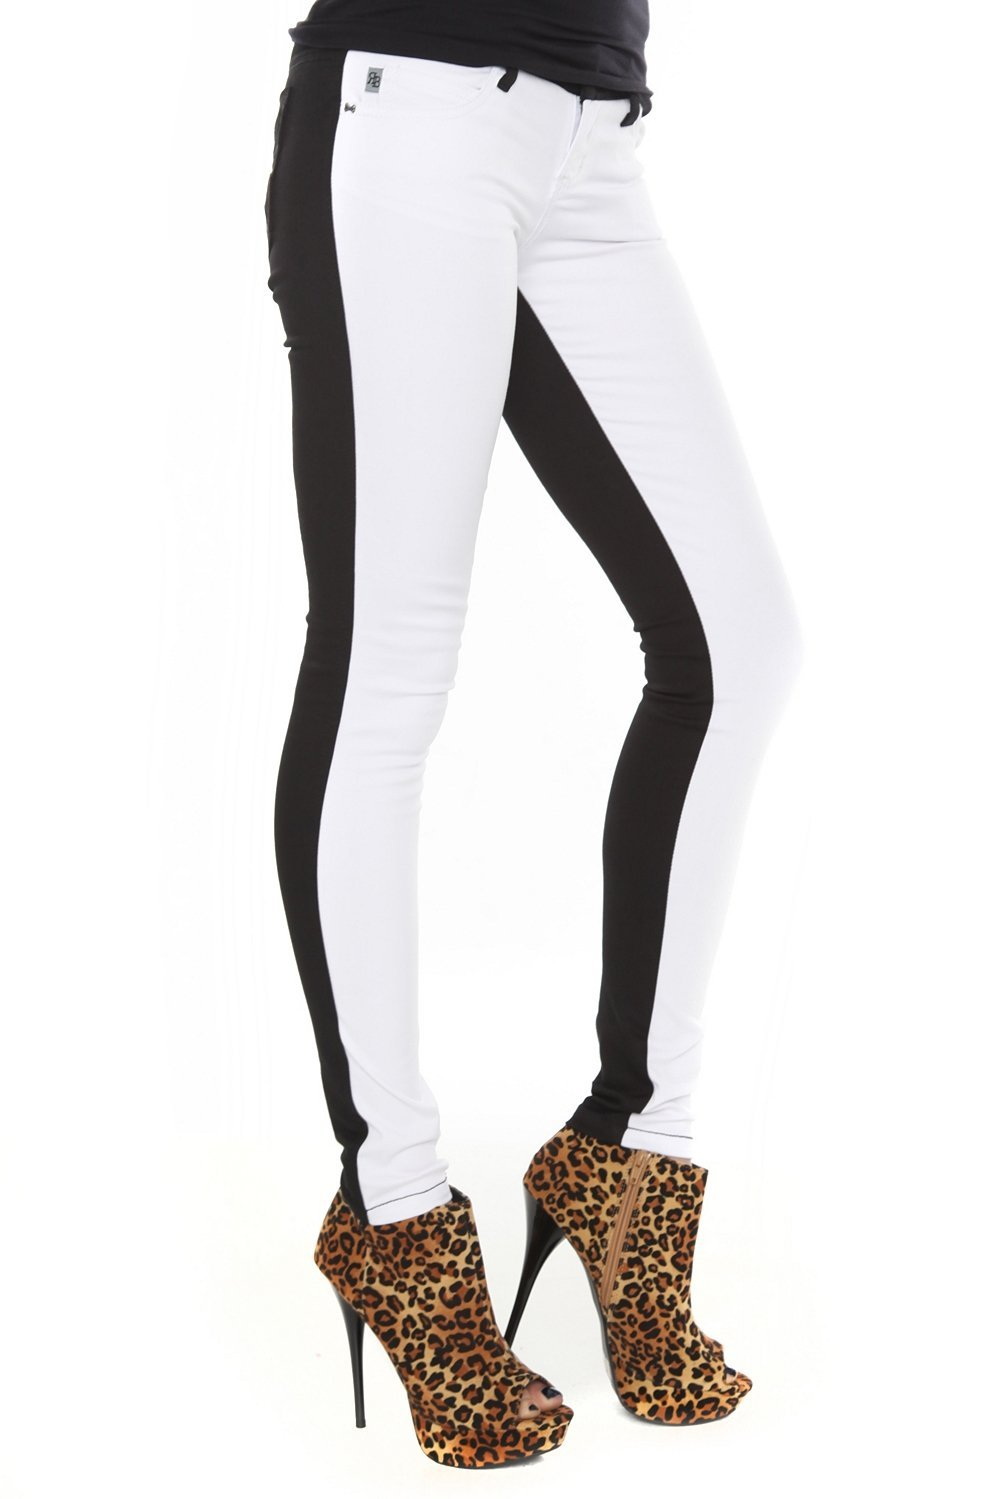 Original BLACK AND WHITE PANTS On The Hunt